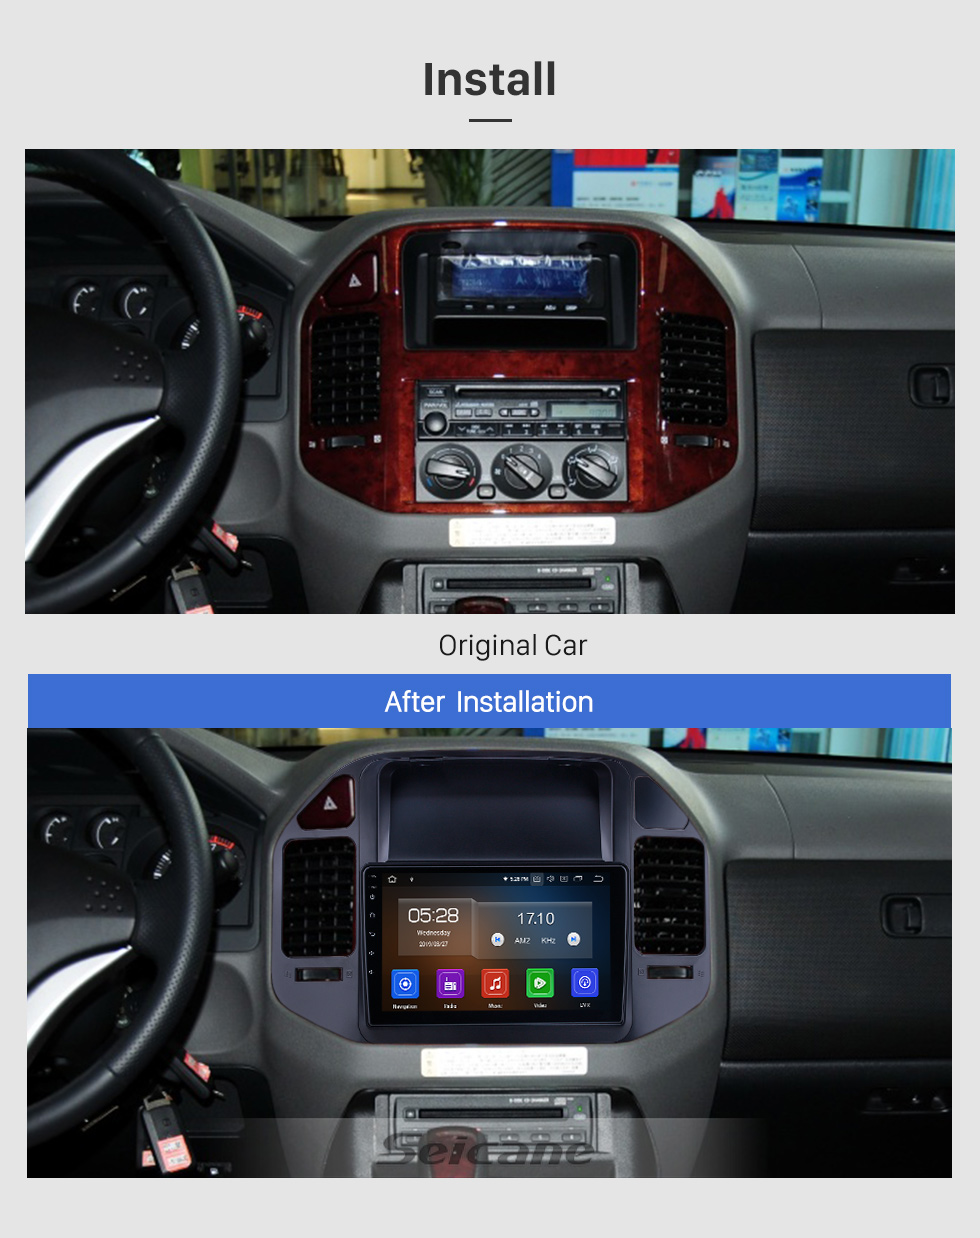 Seicane OEM 9 inch Android 9.0 for 2004 2005 2006-2011 Mitsubishi Pajero V73 Radio Bluetooth HD Touchscreen GPS Navigation System Carplay support Digital TV